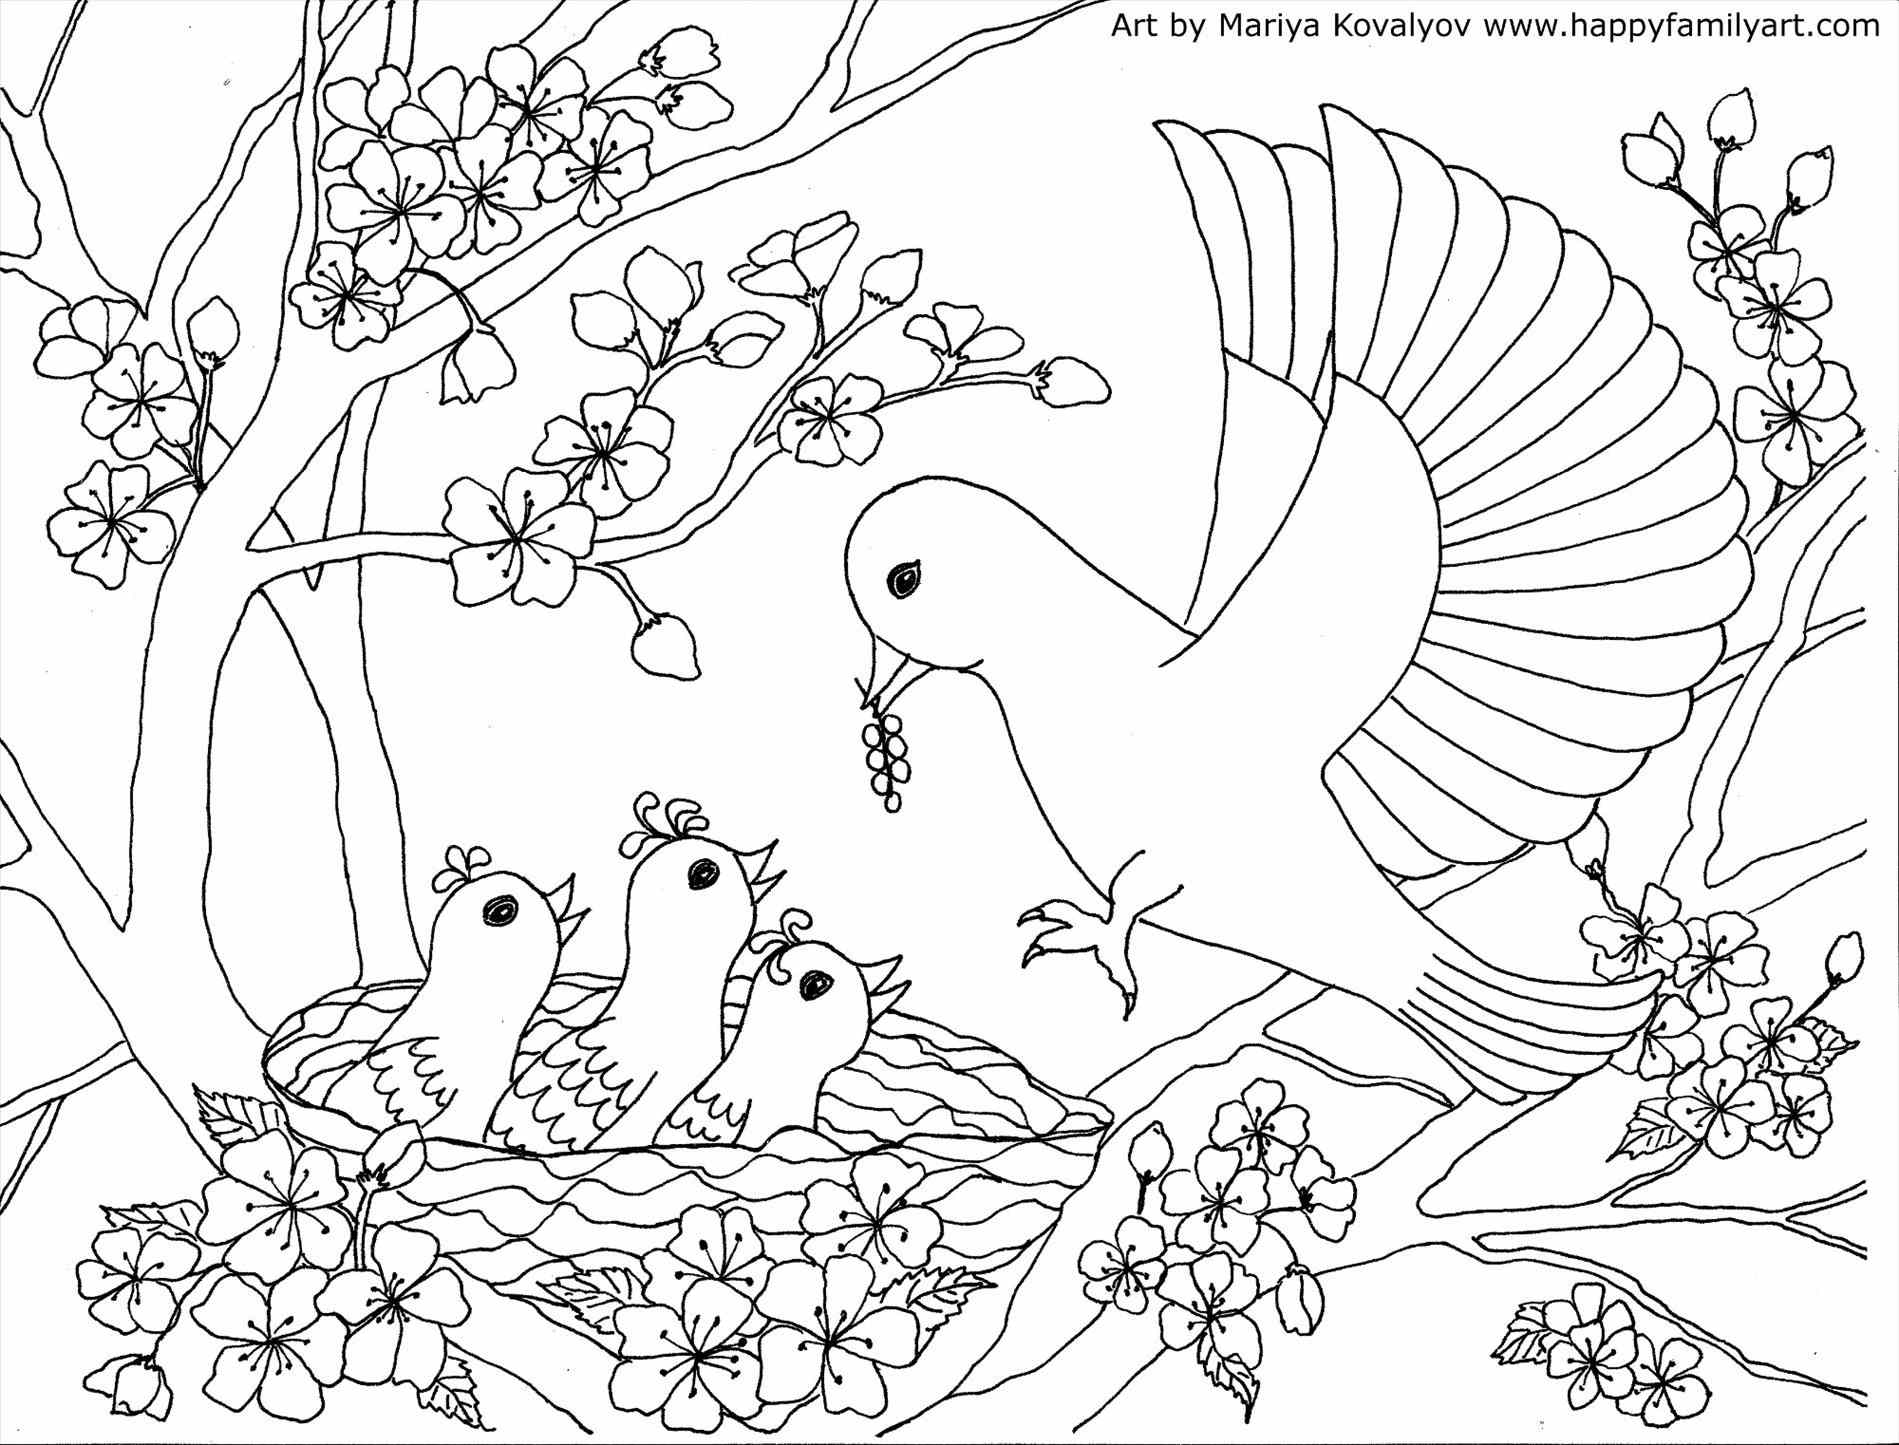 1899x1445 Beach Landscape Coloring Pages Articlespagemachinecom